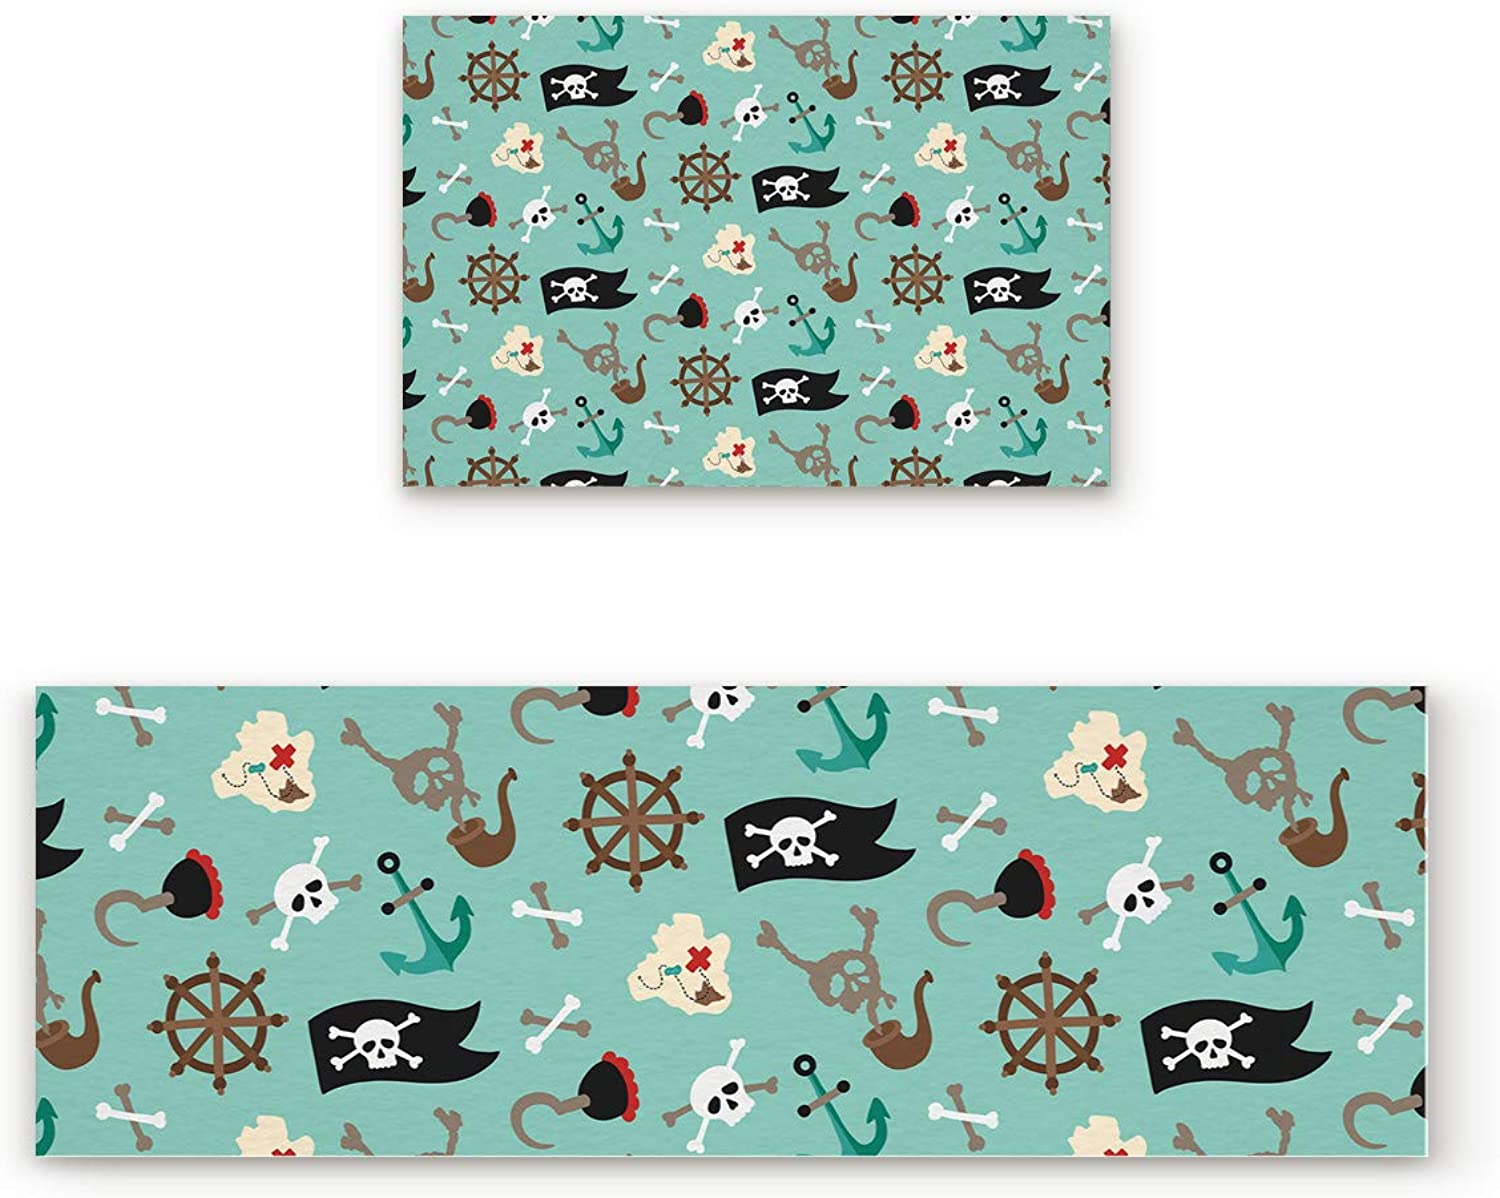 Fantasy Star Kitchen Rugs Sets 2 Piece Floor Mats Pirate Flag Rudder Hook Doormat Non-Slip Rubber Backing Area Rugs Washable Carpet Inside Door Mat Pad Sets (19.7  x 31.5 +19.7  x 63 )